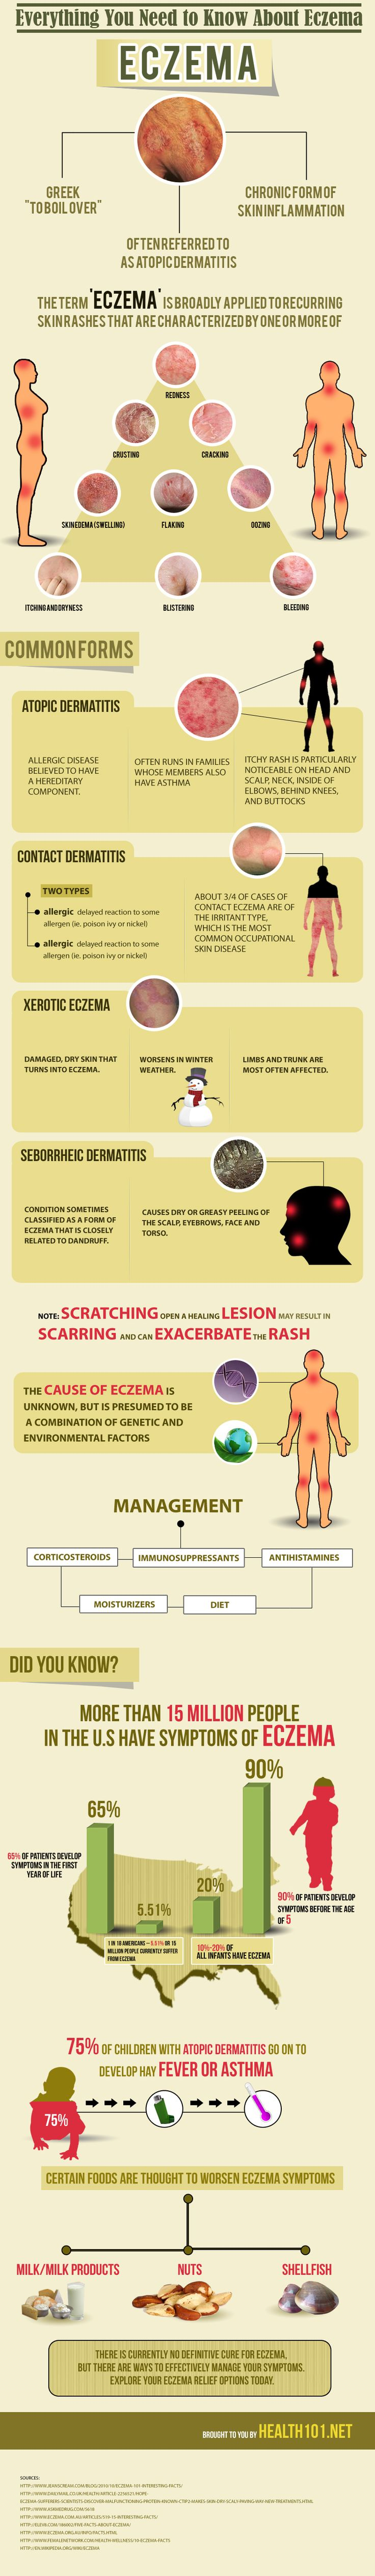 What You Need To Know About Eczema Prevention (infographic): http://www.rxwiki.com/news-article/eczema-hands-young-adults-explored-new-swedish-study #eczema #infographic